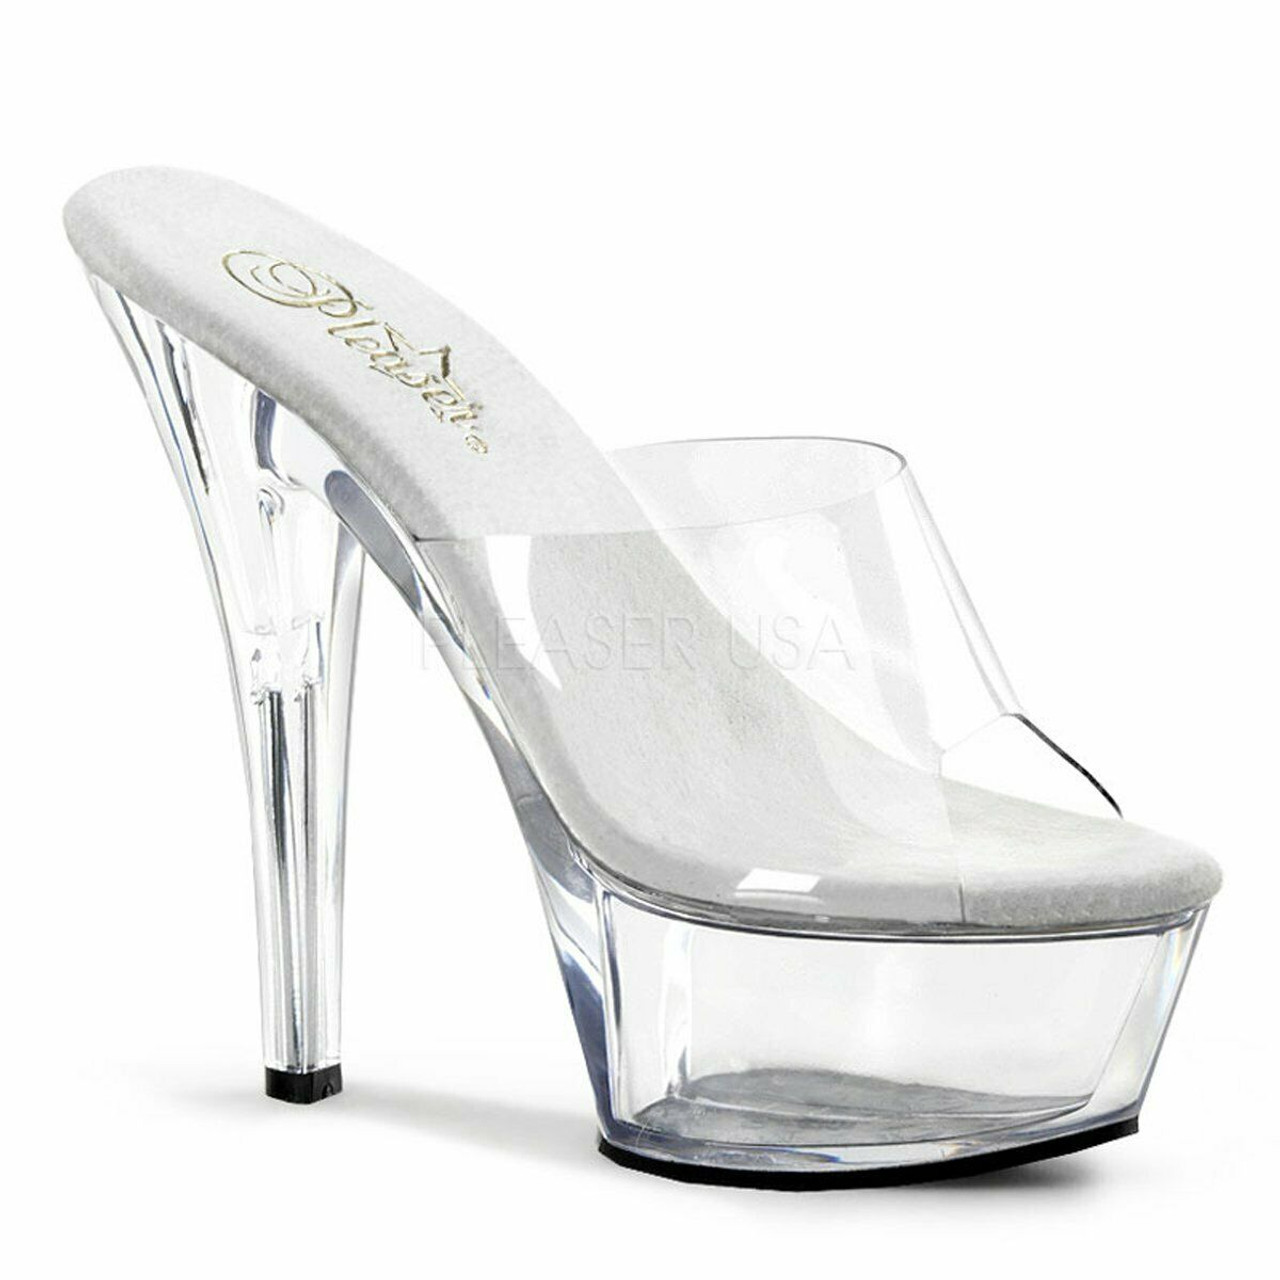 d46be37ee61 Pleaser Sexy Exotic Dancing Clear Slip On Platforms 6